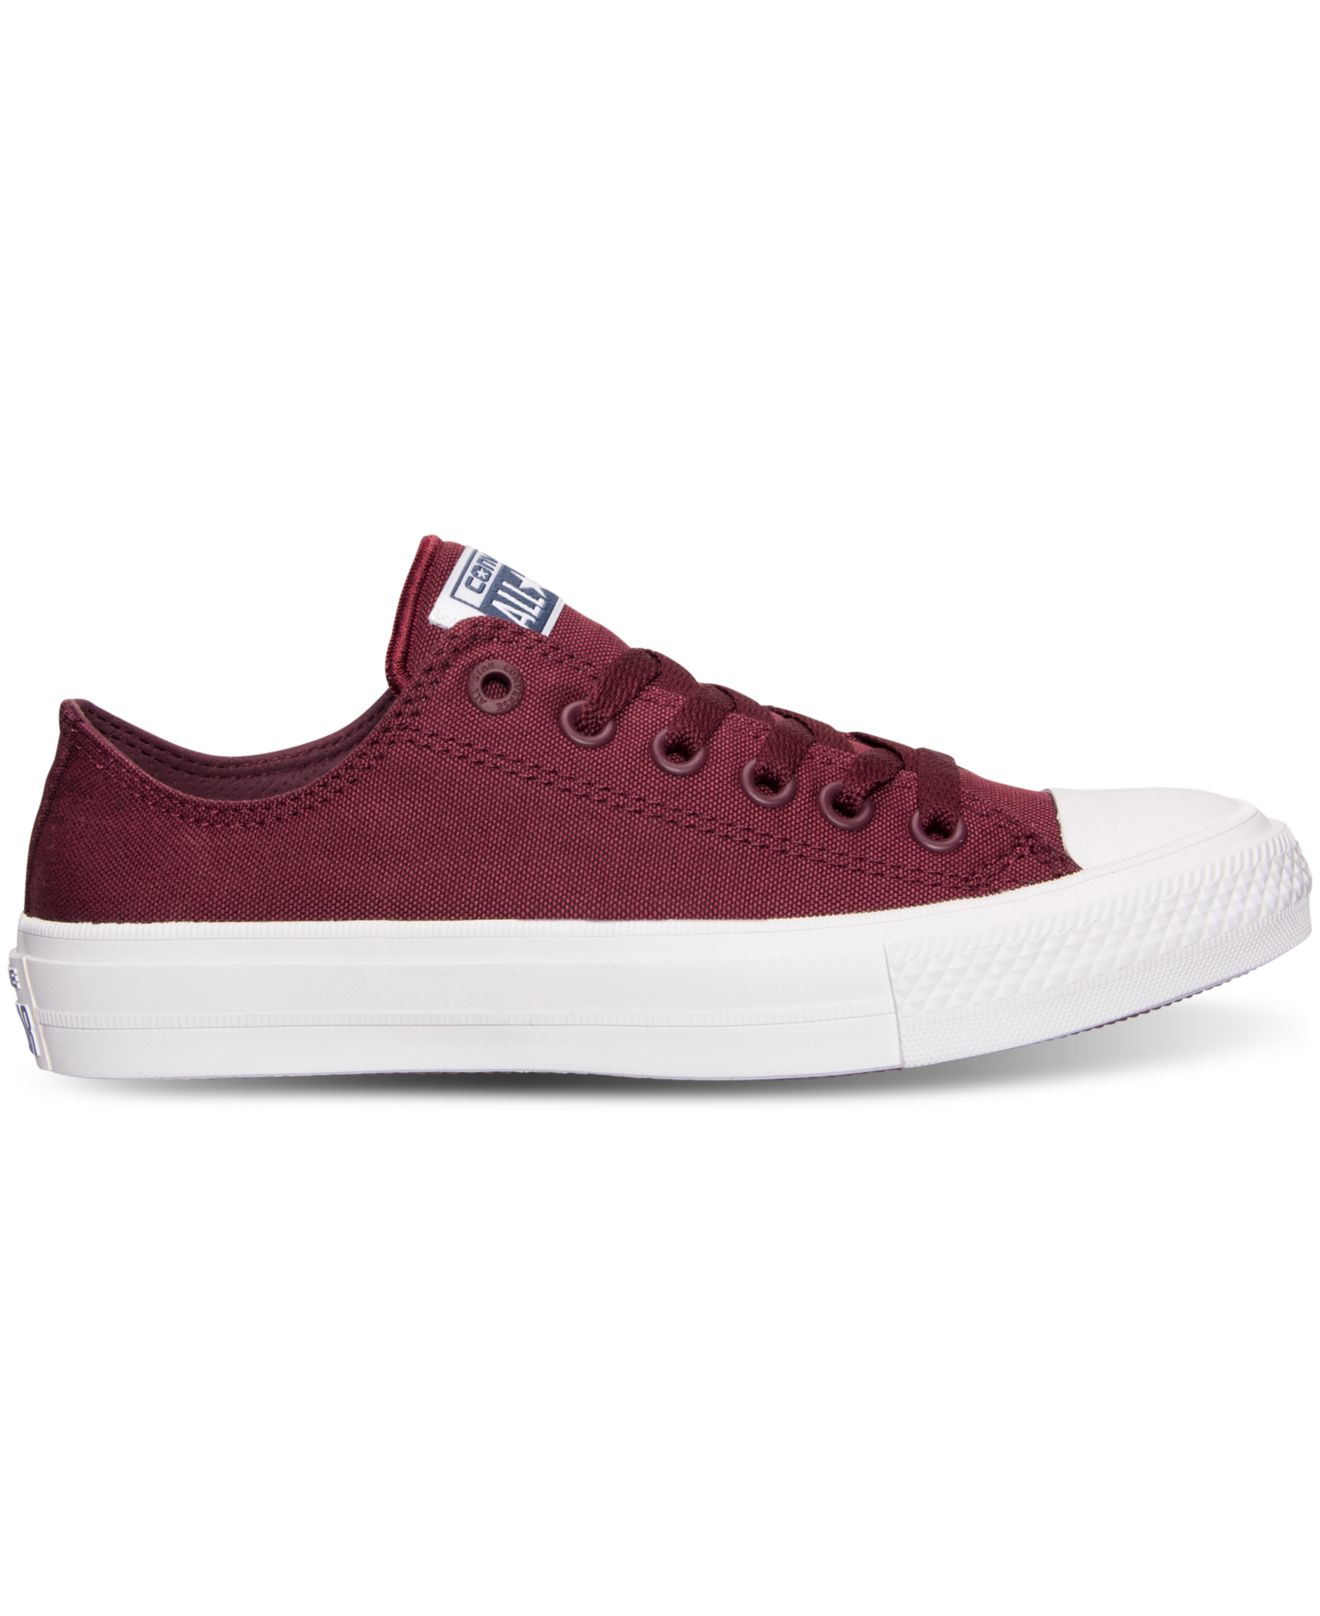 Converse Women's Chuck Taylor All Star Ox Casual Sneakers from Finish Line IQPhO